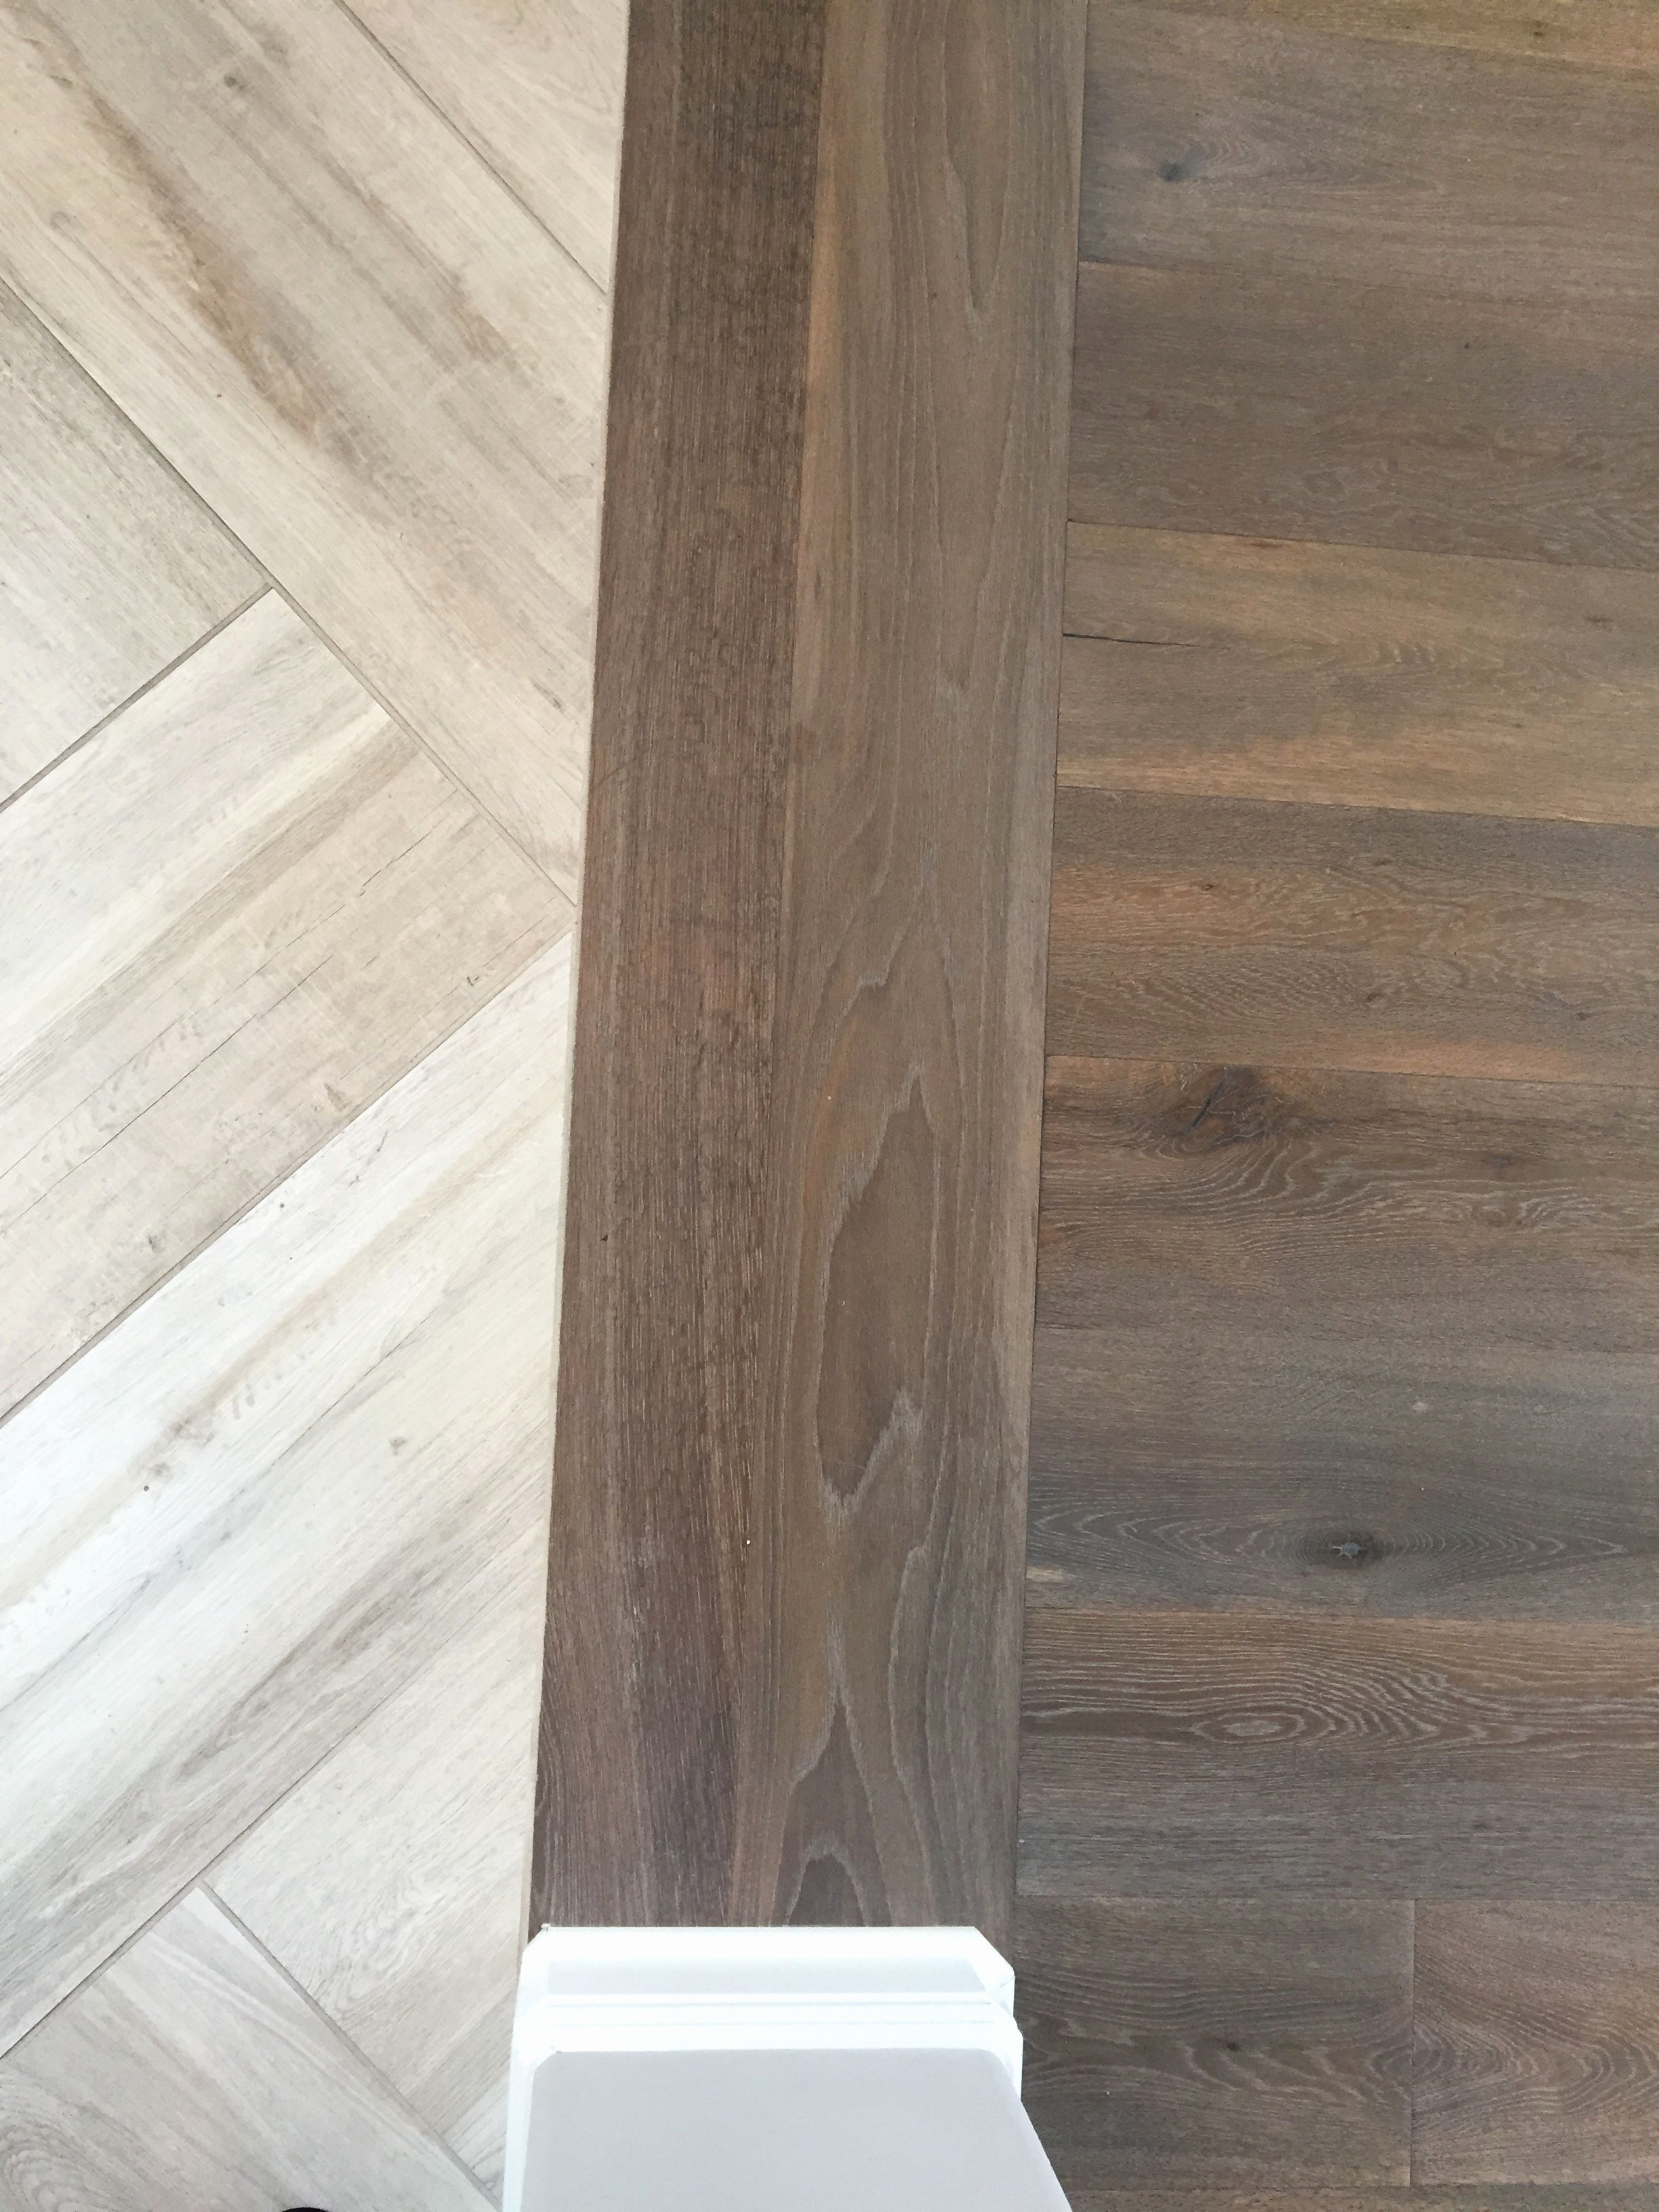 Hardwood Floor Repair Charlotte Nc Of Wood Floor Designs New Kitchen Designer Inspirational Samples Pertaining to Wood Floor Designs Awesome Floor Transition Laminate to Herringbone Tile Pattern